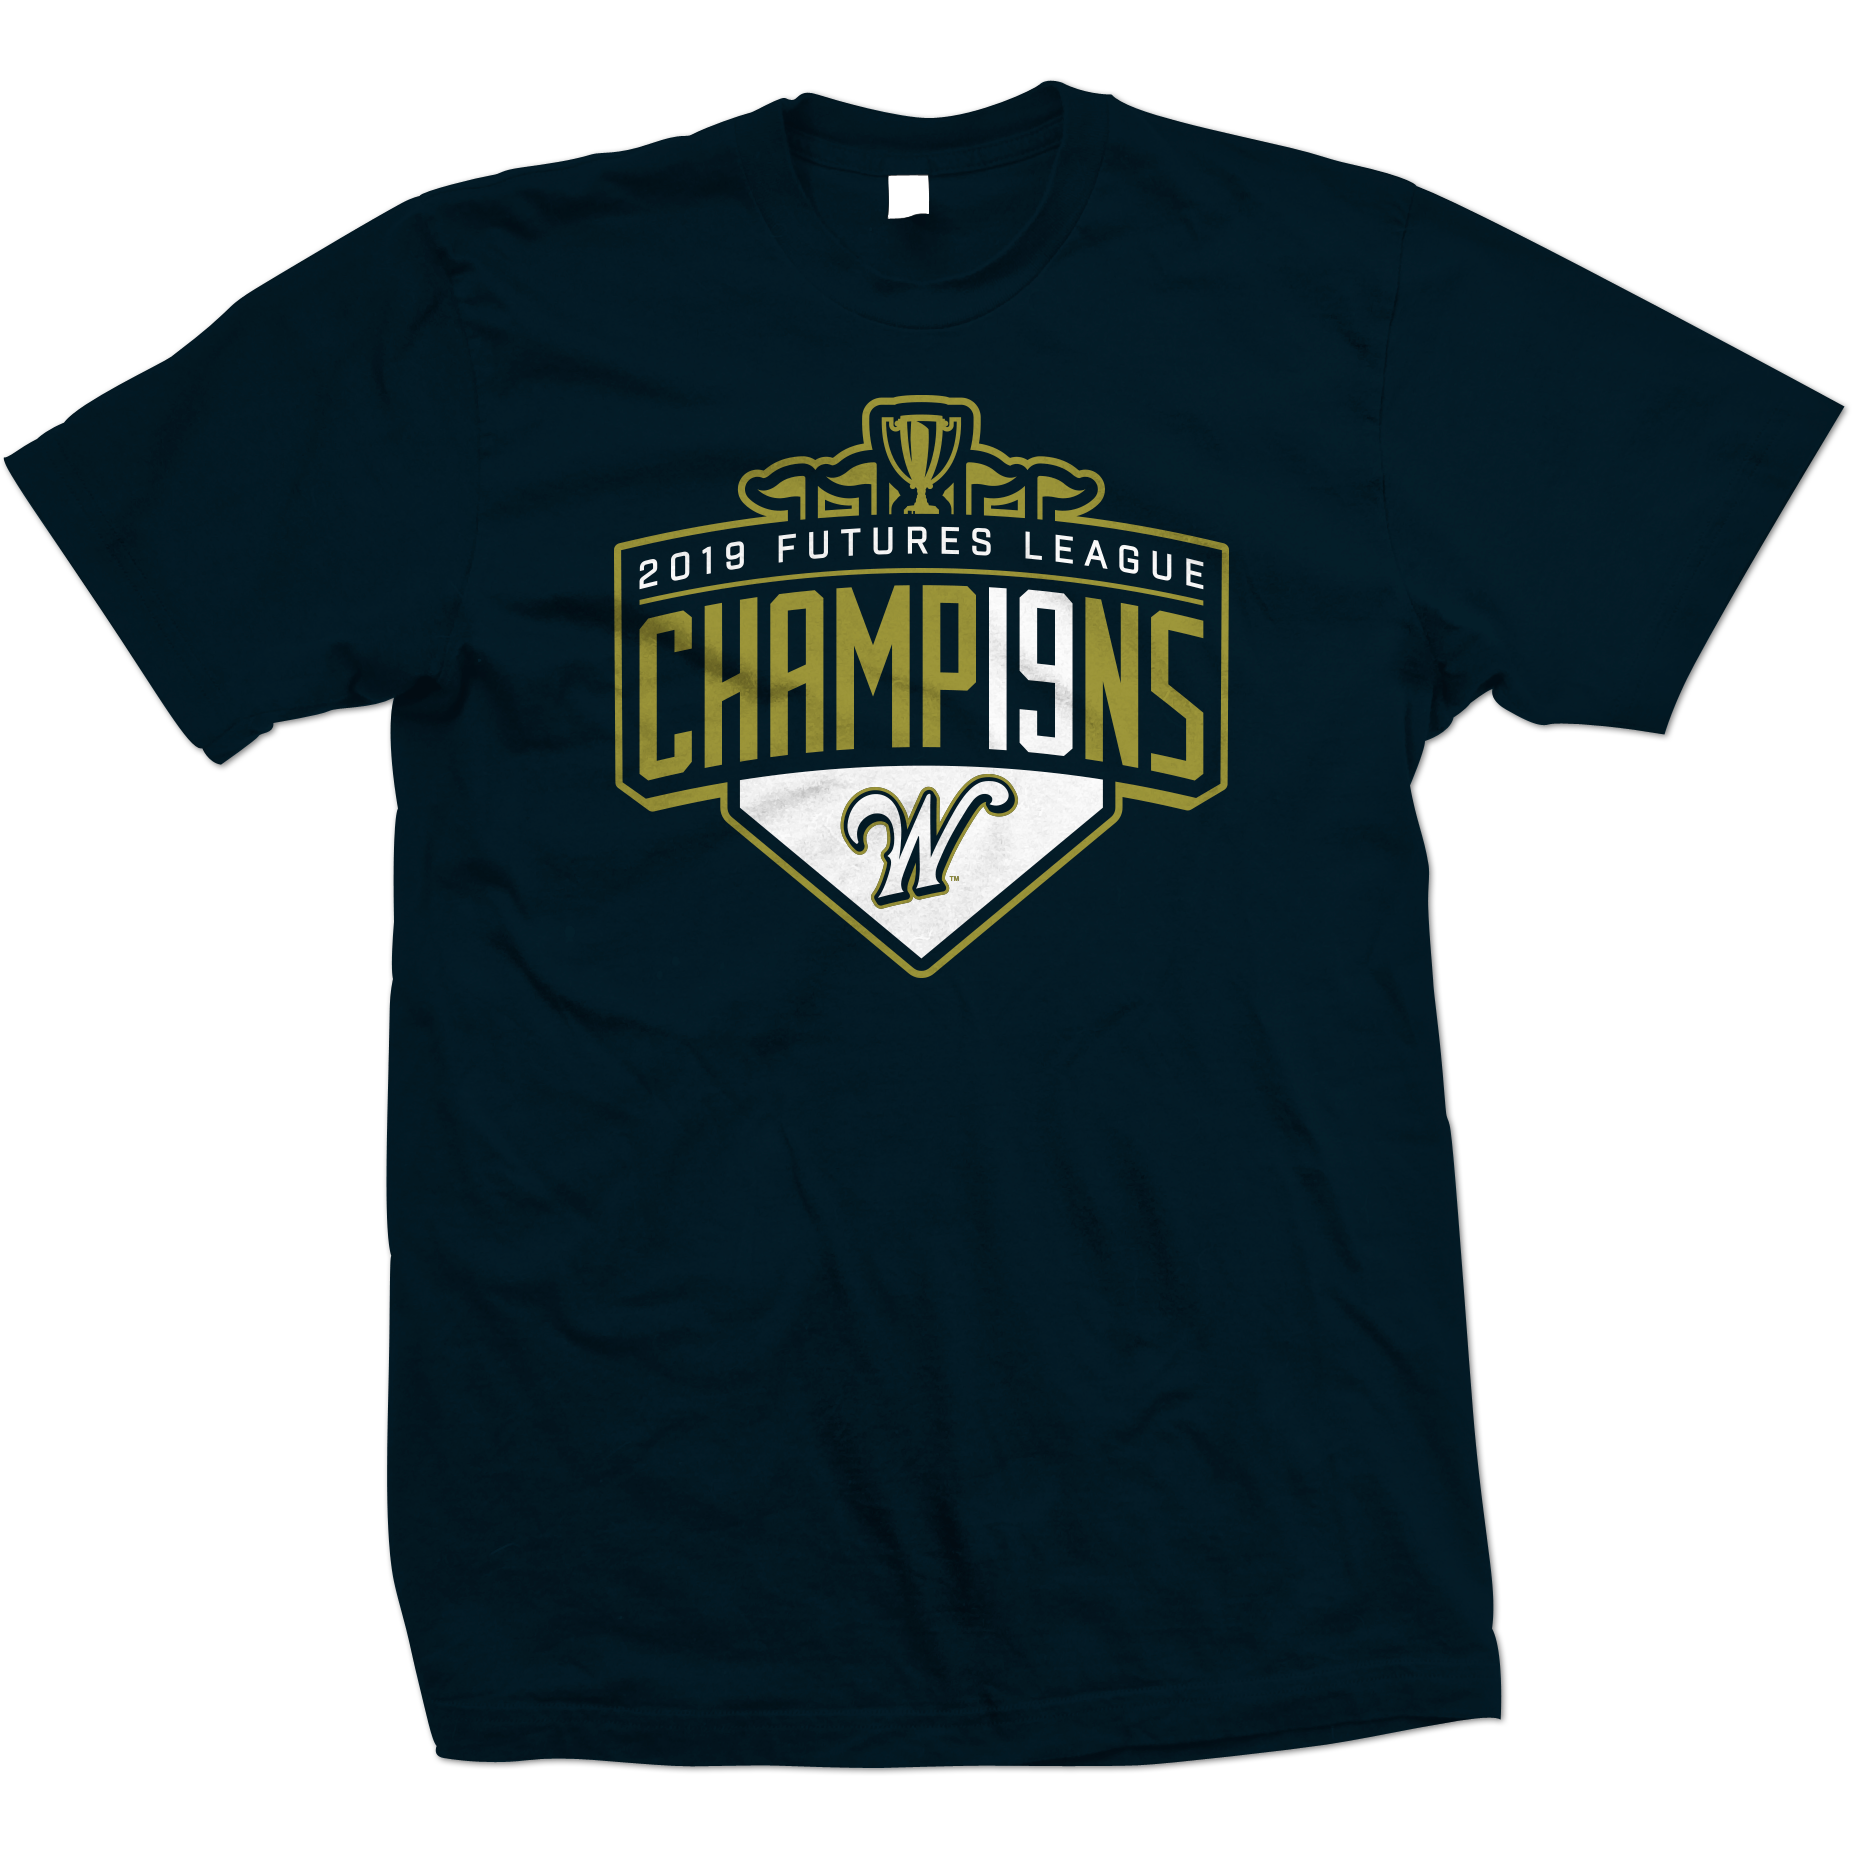 WB_2019_Champs_01.png